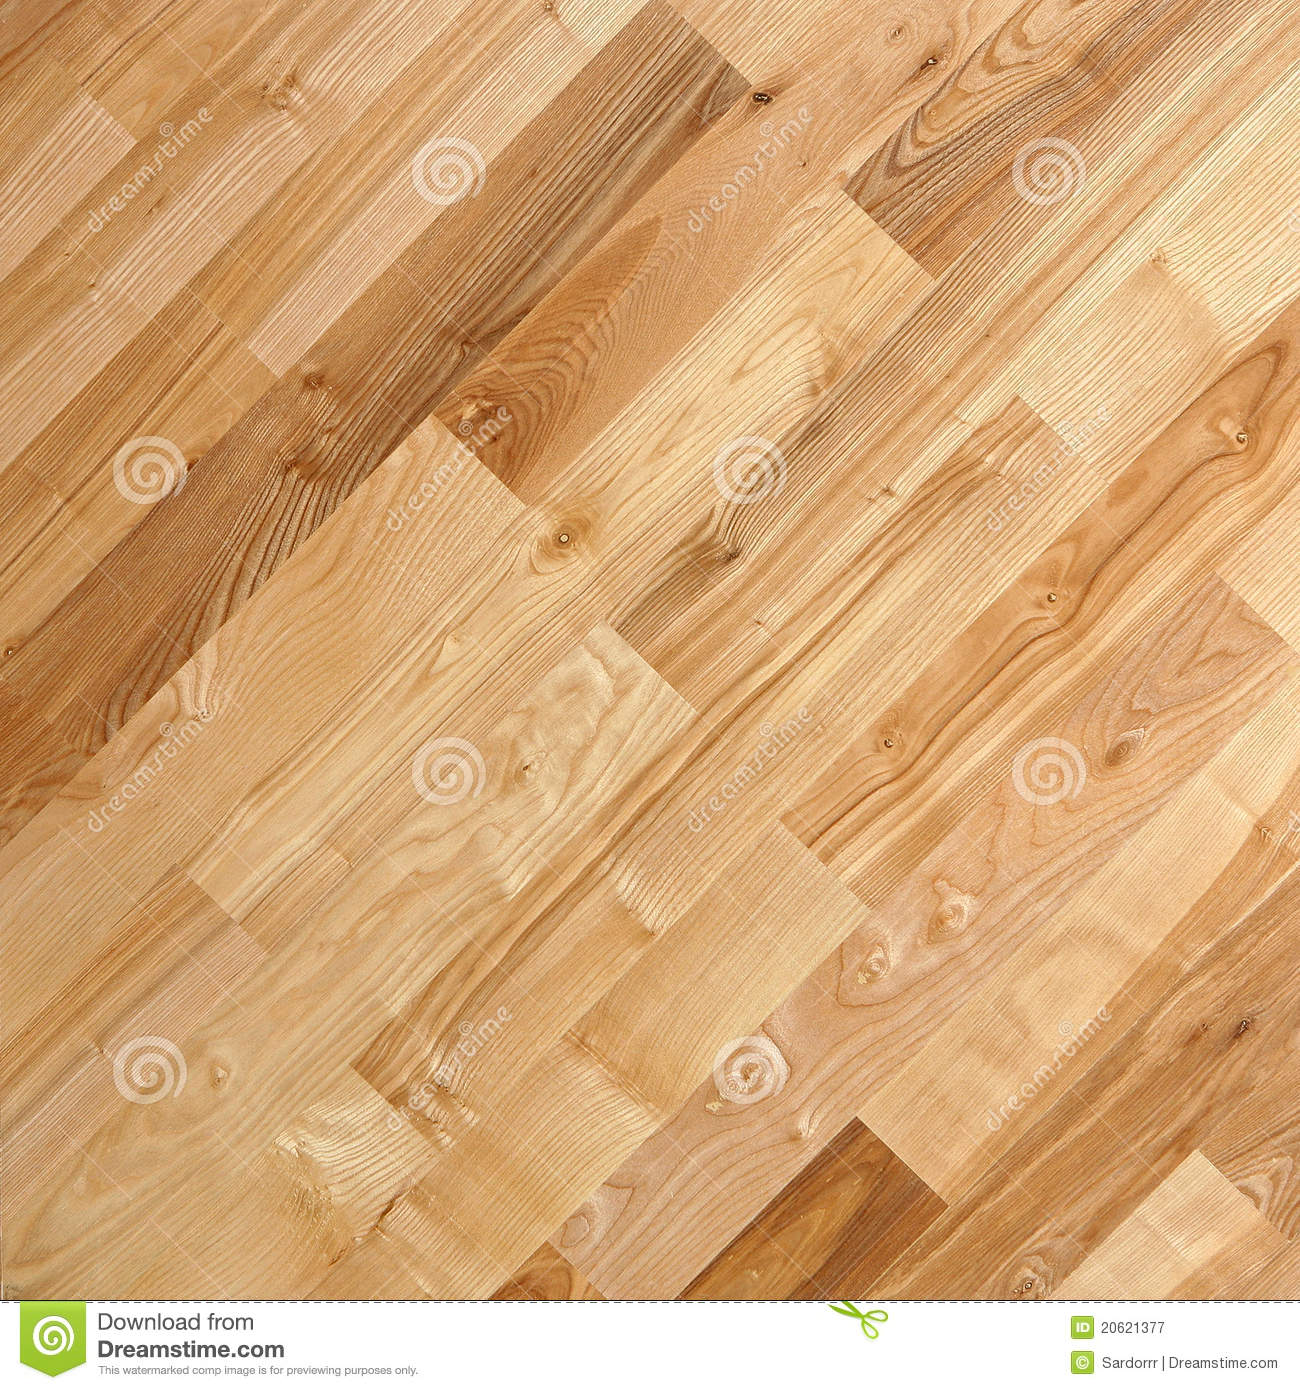 wooden surface floor background royalty free stock photography image 20621377. Black Bedroom Furniture Sets. Home Design Ideas